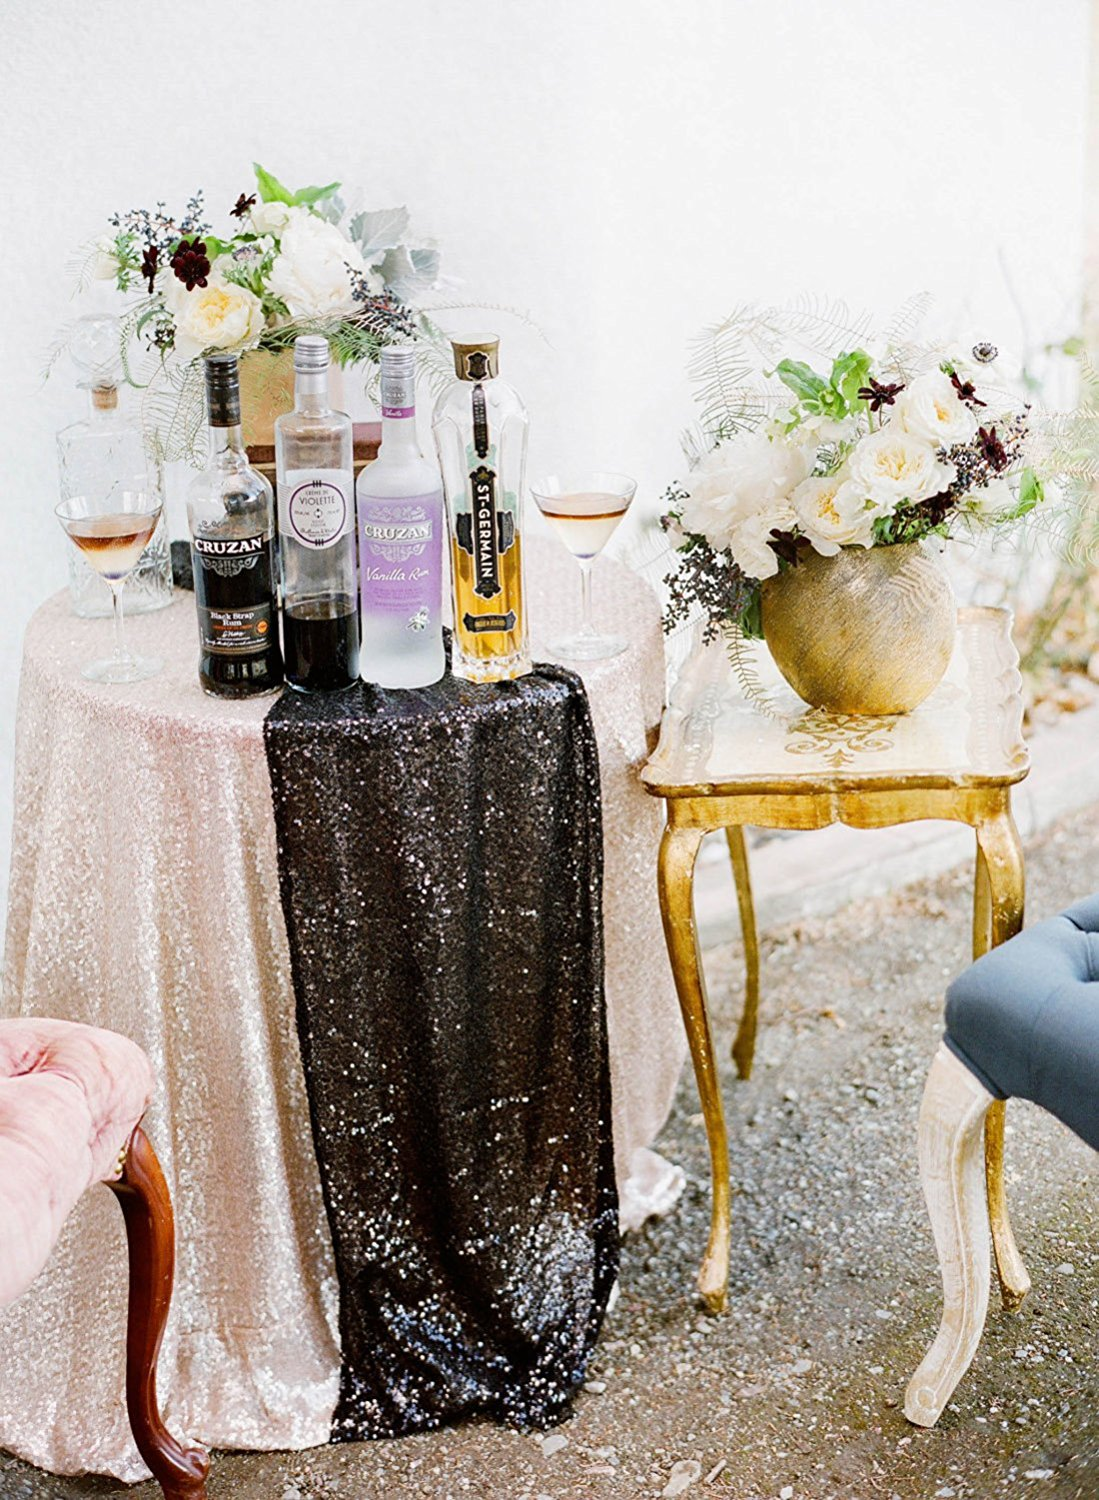 Table Cloth/Table Runner with Glitter Accents  - Pro Wedding Invites